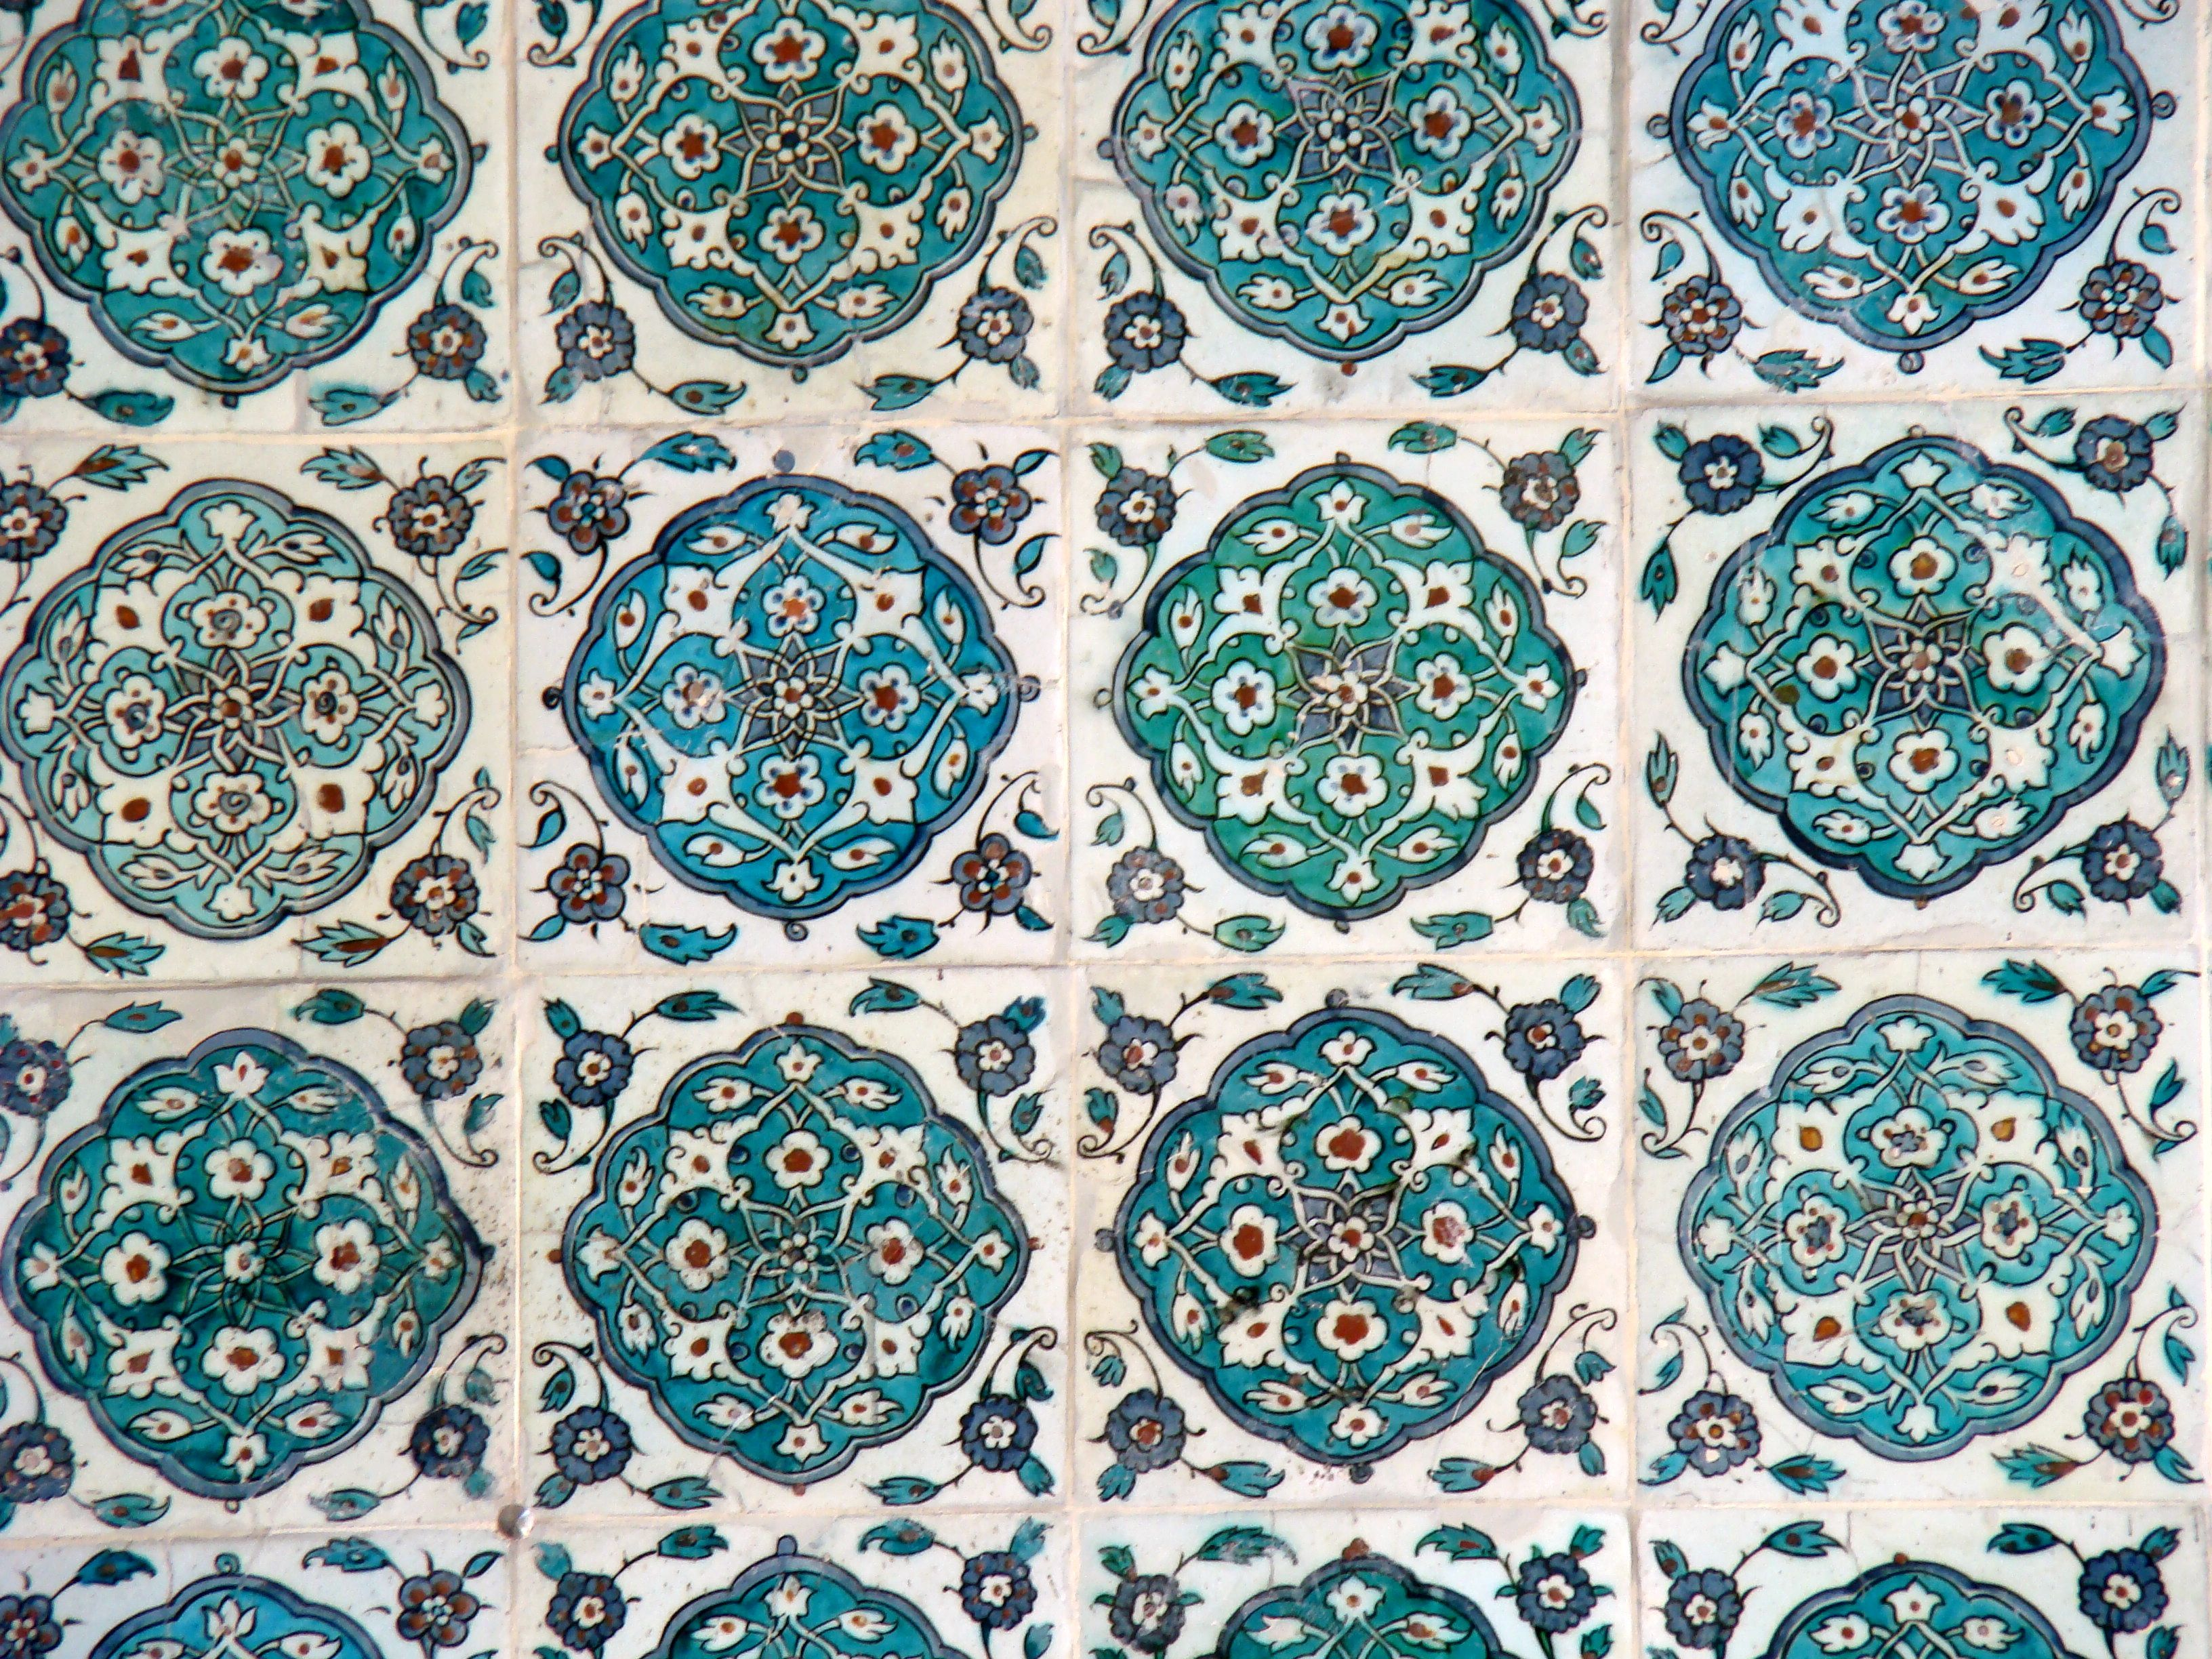 Tile Decorations Captivating Blue Mosque Iznik Tiles  Blue Iznik Tile Decorations Topkapi Decorating Design